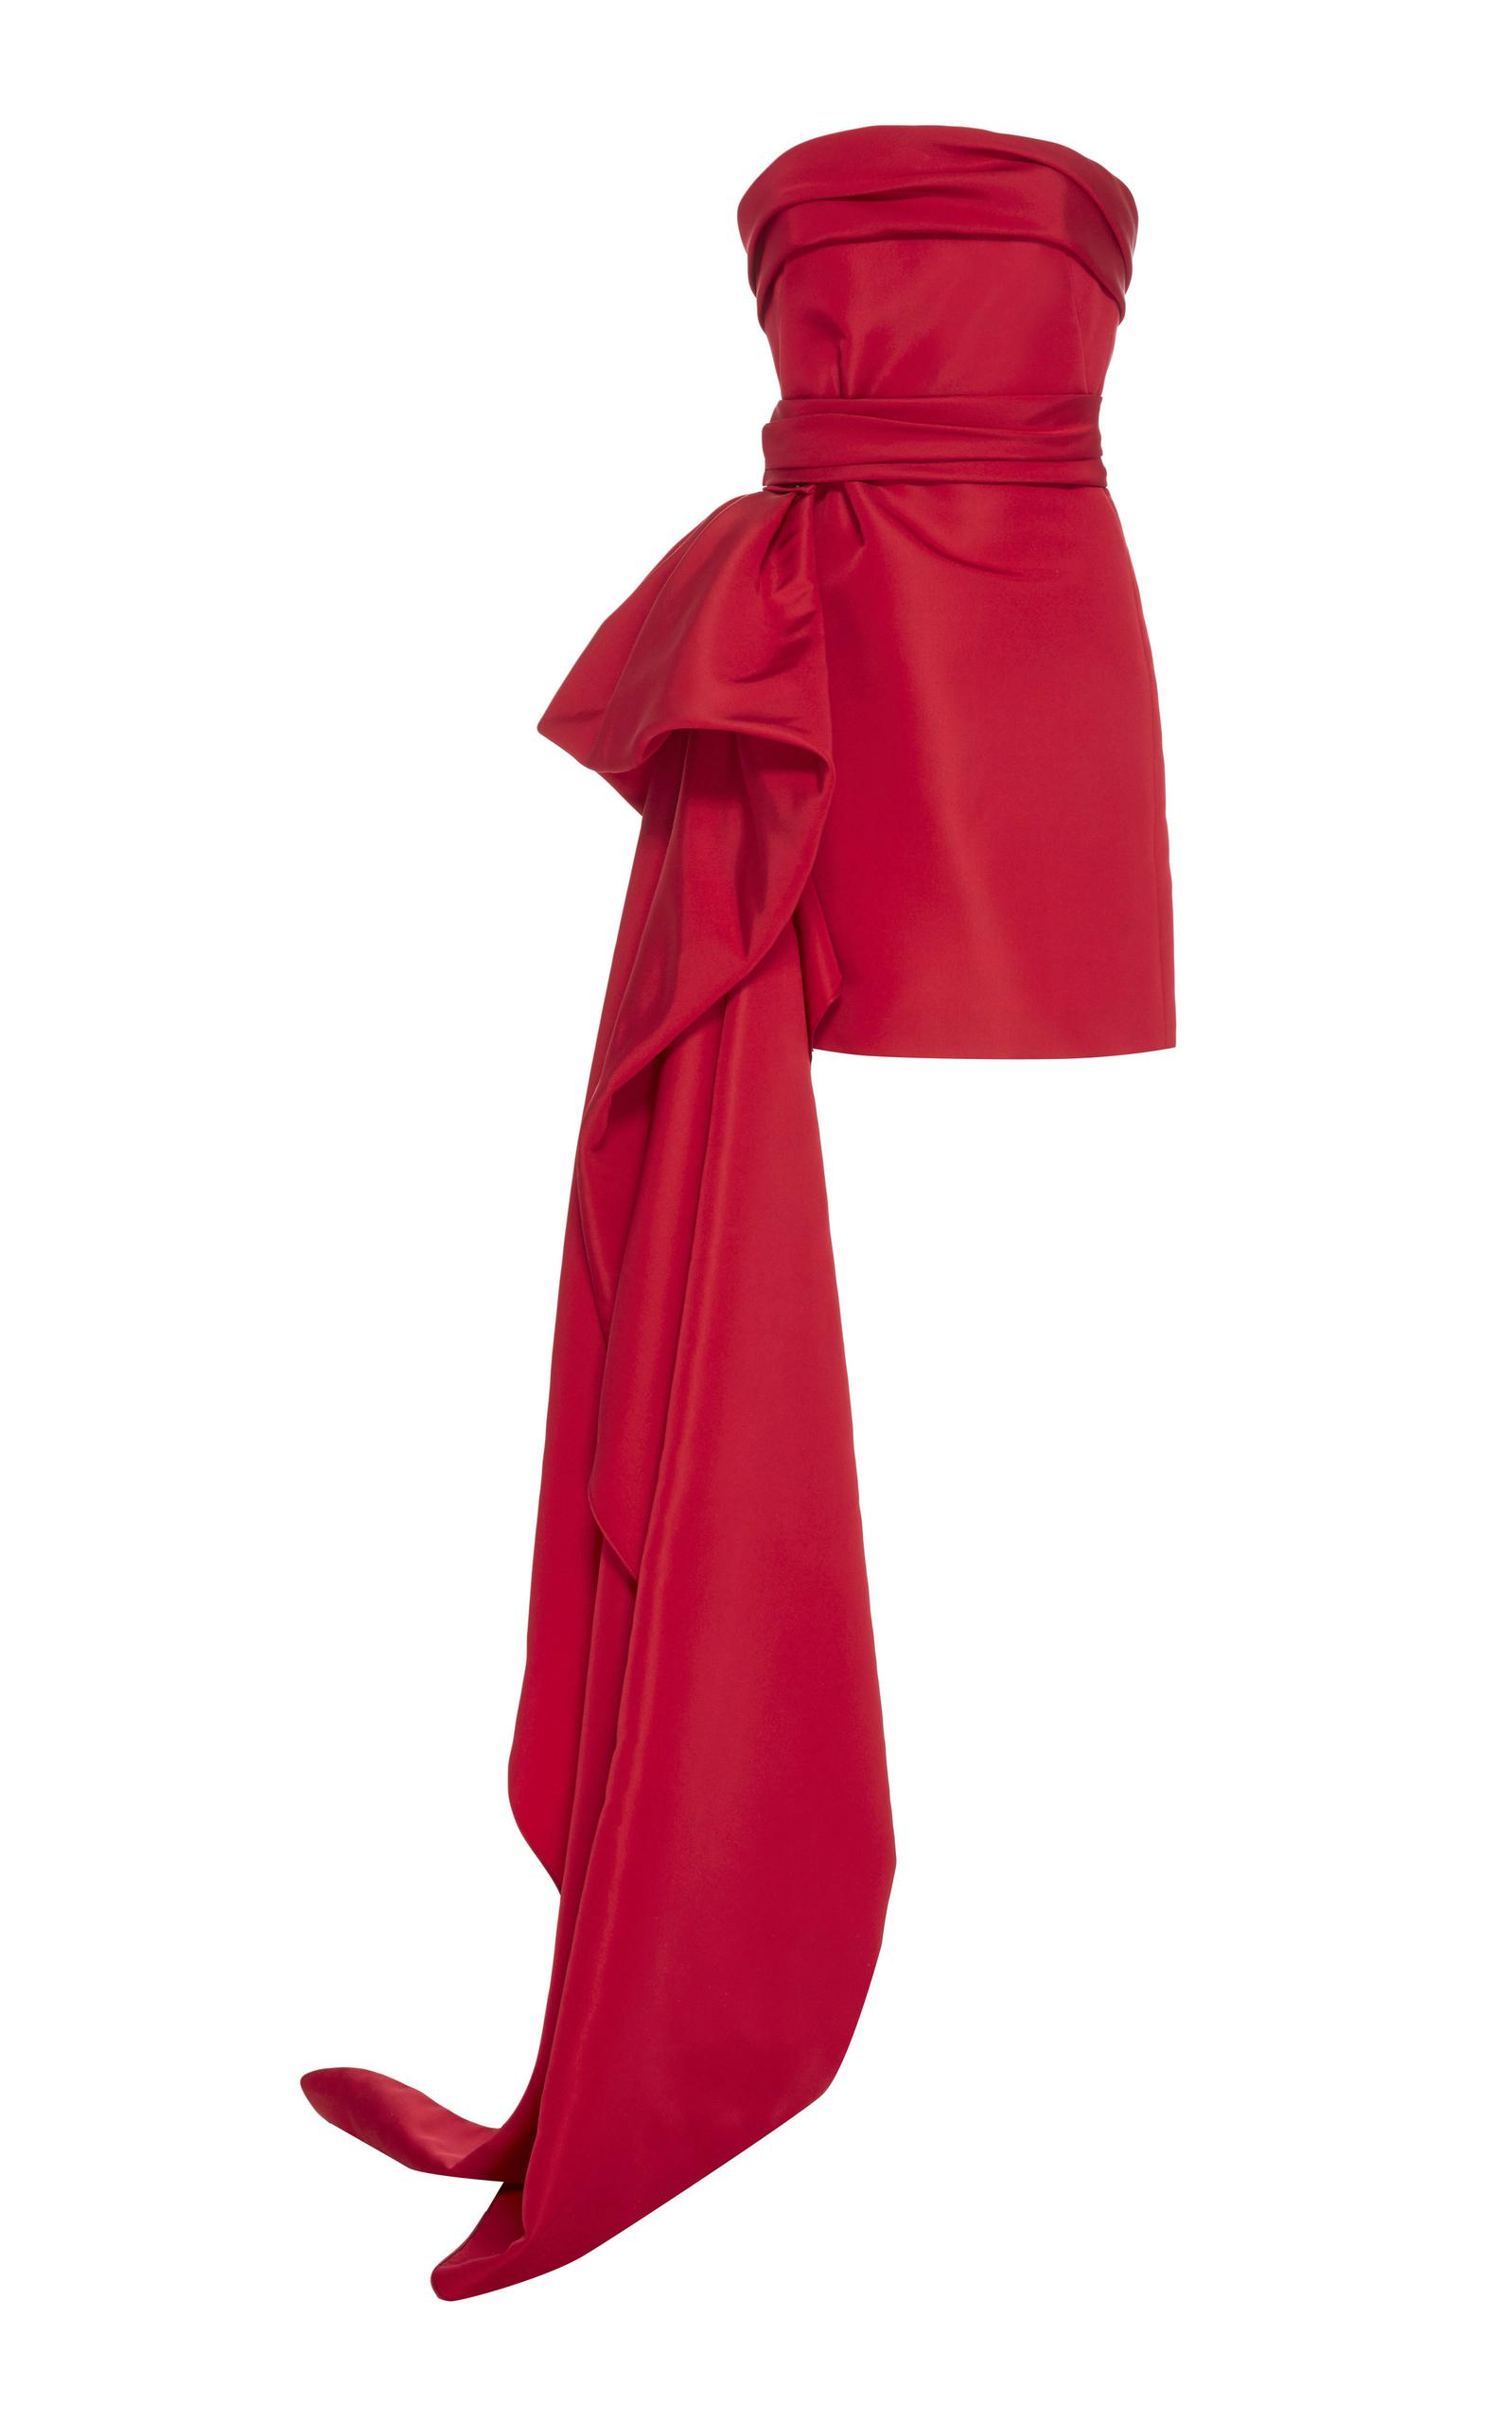 Lyst - Reem Acra Strapless Faille Mini Dress With Draped Peplum in Red